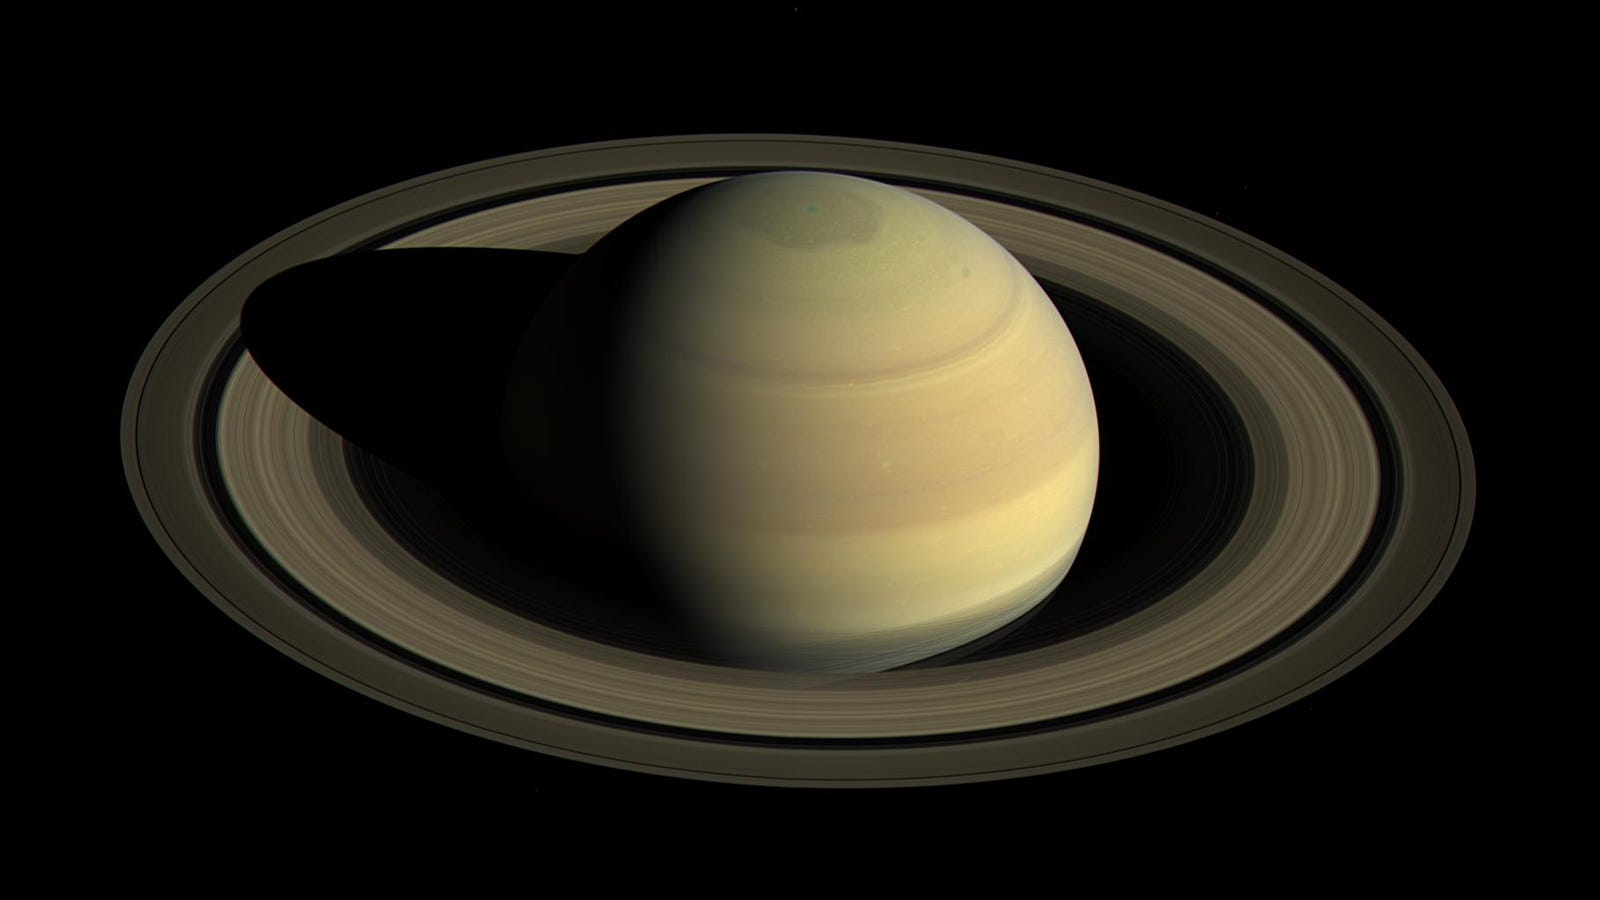 Saturn's Rings Could Be Gone in Just 100 Million Years